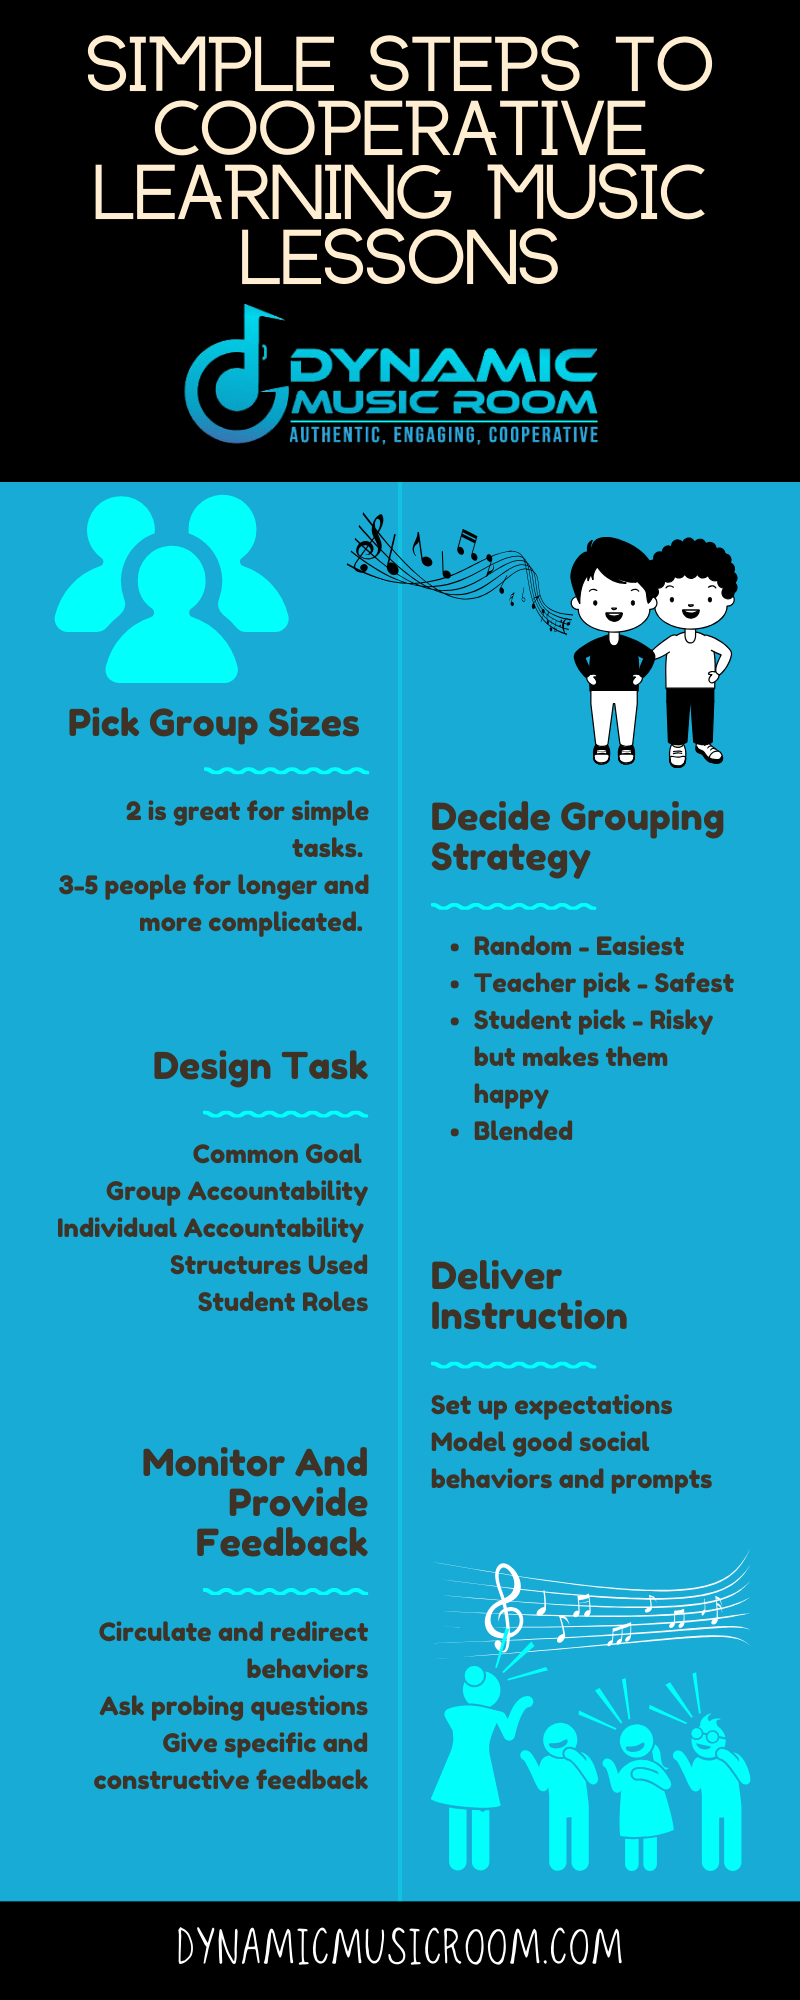 image simple steps to cooperative learning music lessons info